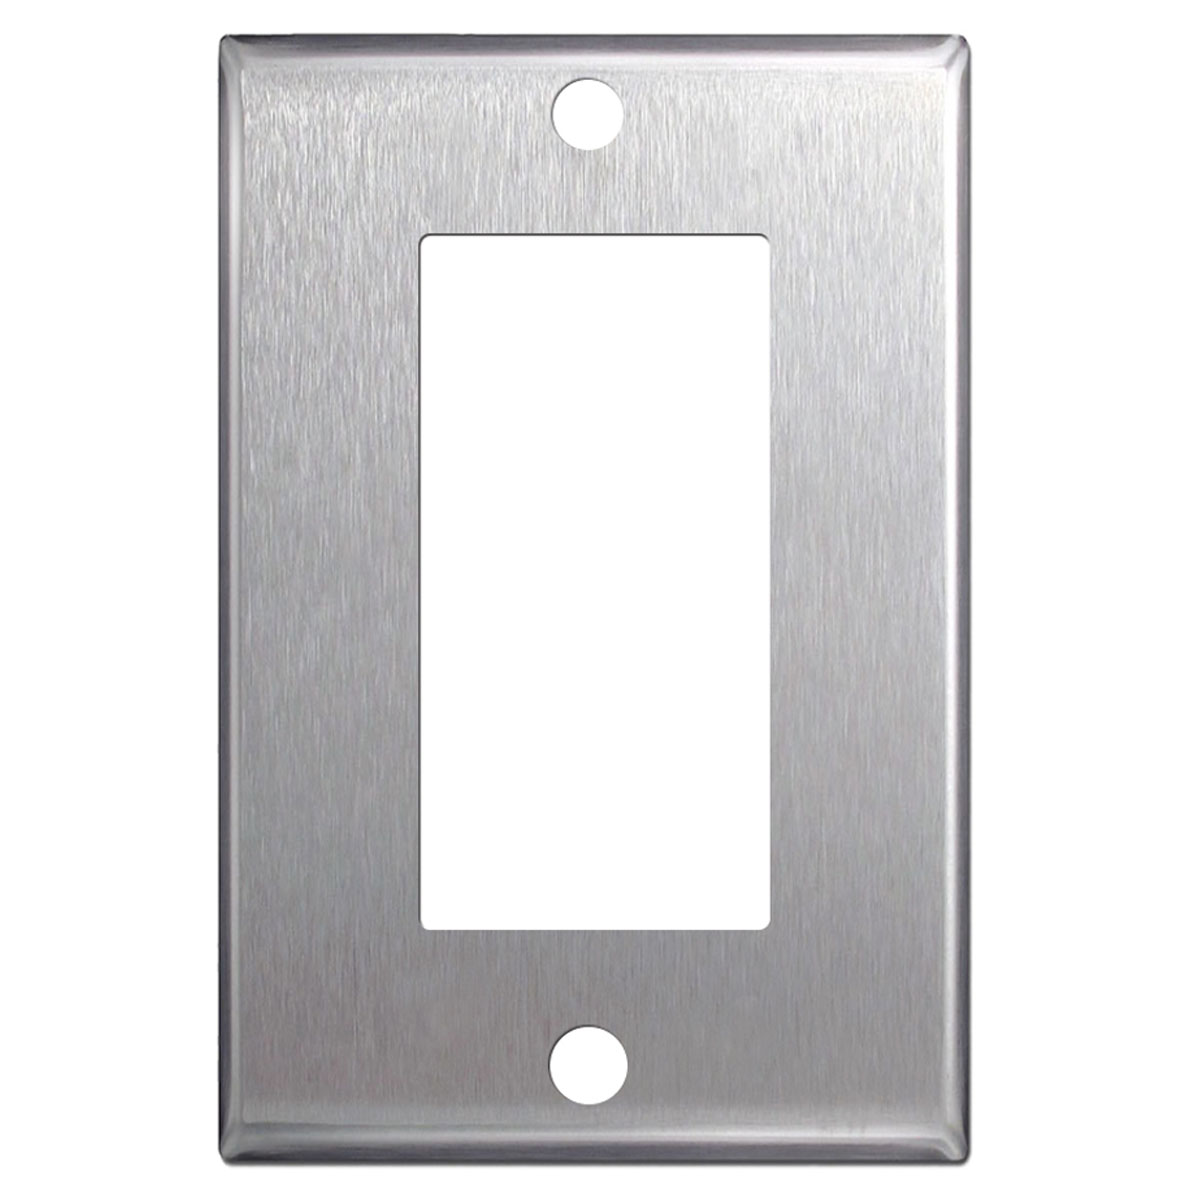 Rocker Switch Plate Custom Stainless Steel Wall Plates  Single Double Gang  Blank Toggle Inspiration